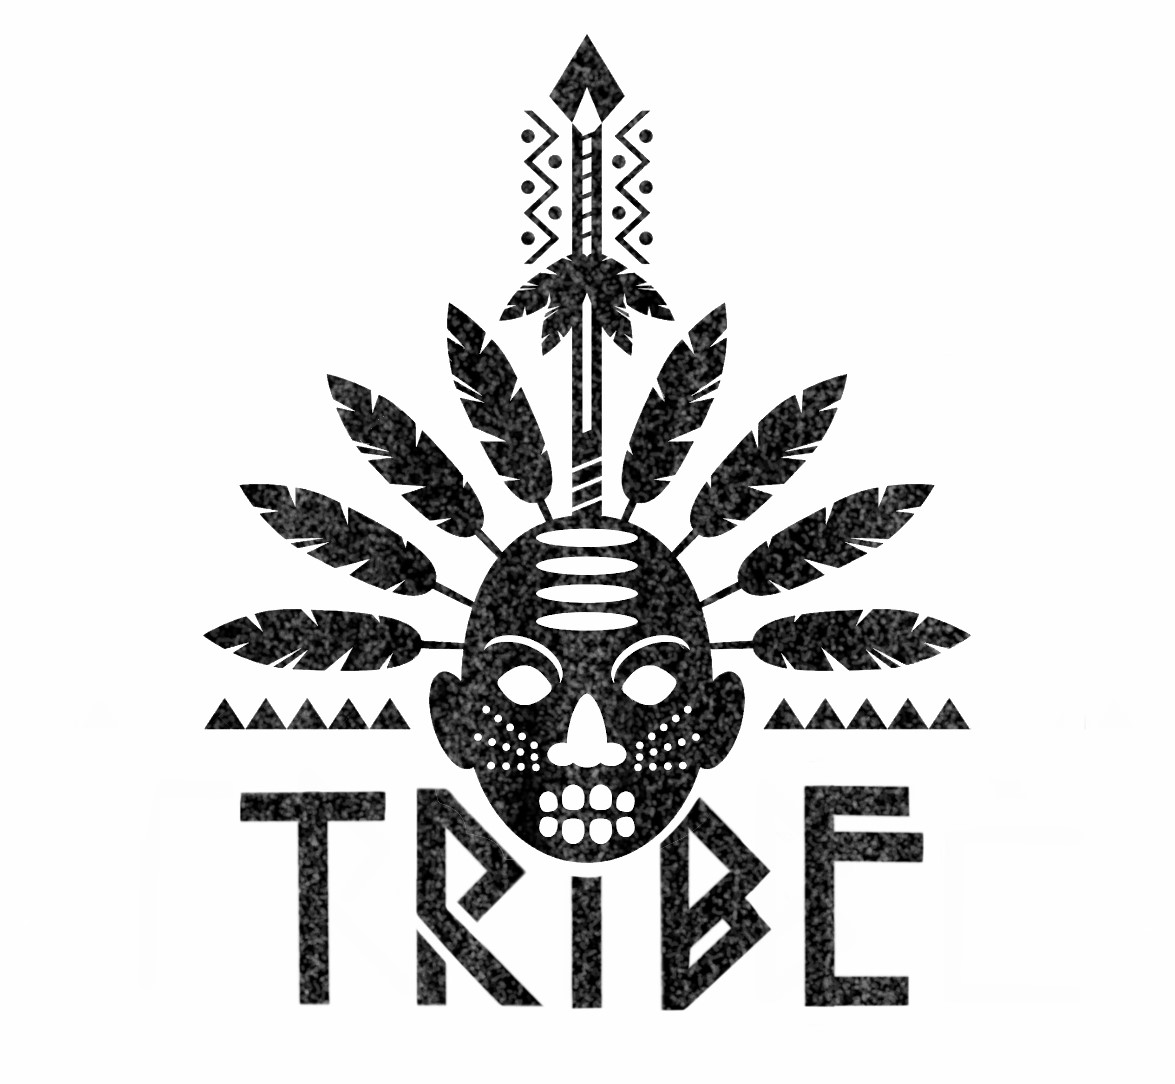 Tribe - Brand image created for Tribe restaurant.